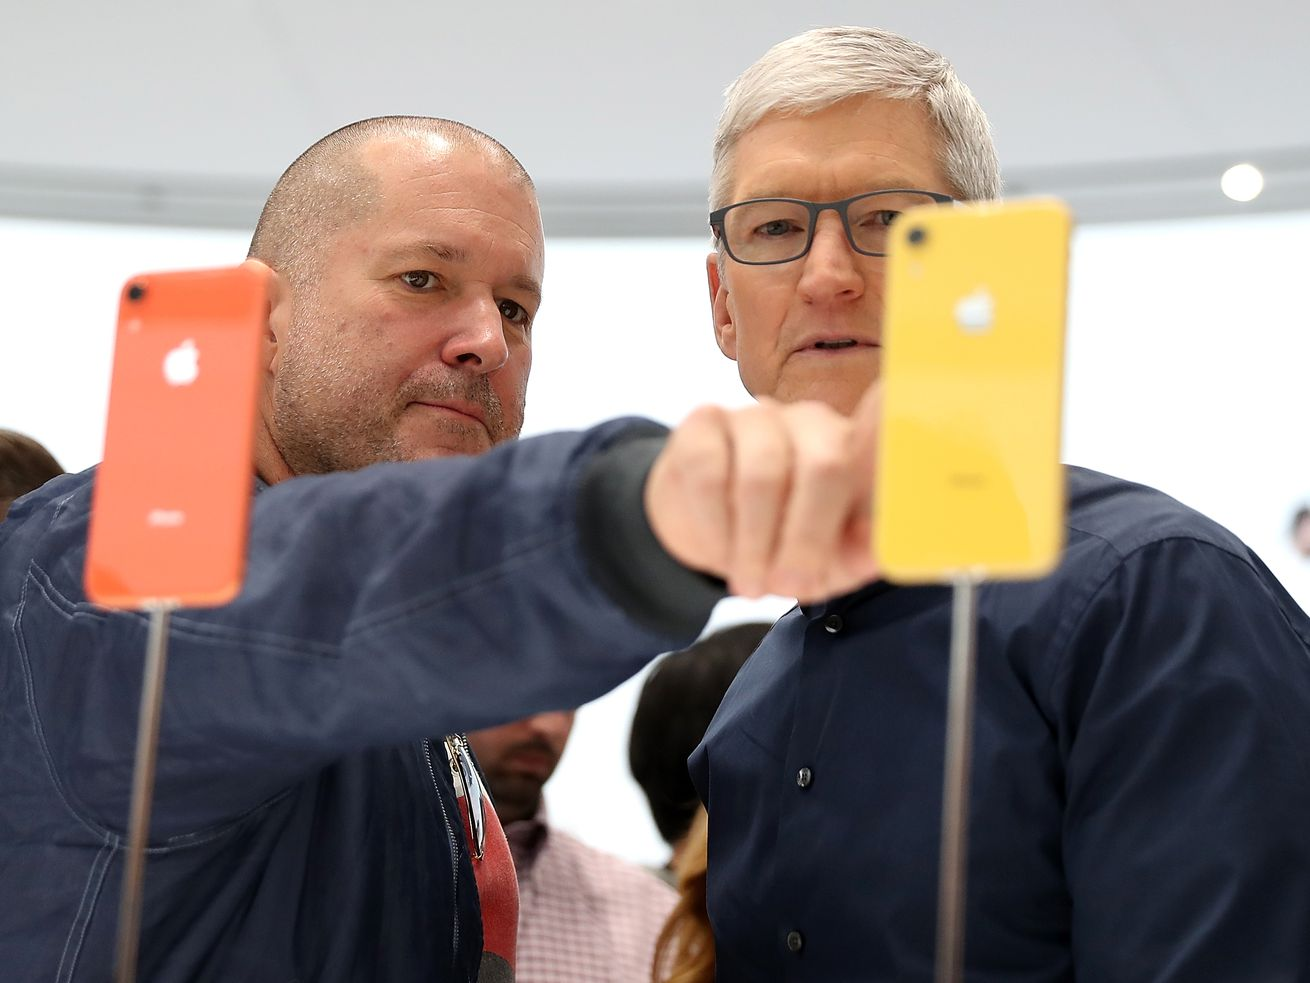 Apple Chief Design Officer Jony Ive and CEO Tim Cook inspect the new iPhone XR during an Apple special event at the Steve Jobs Theatre on September 12, 2018, in Cupertino, Calif.